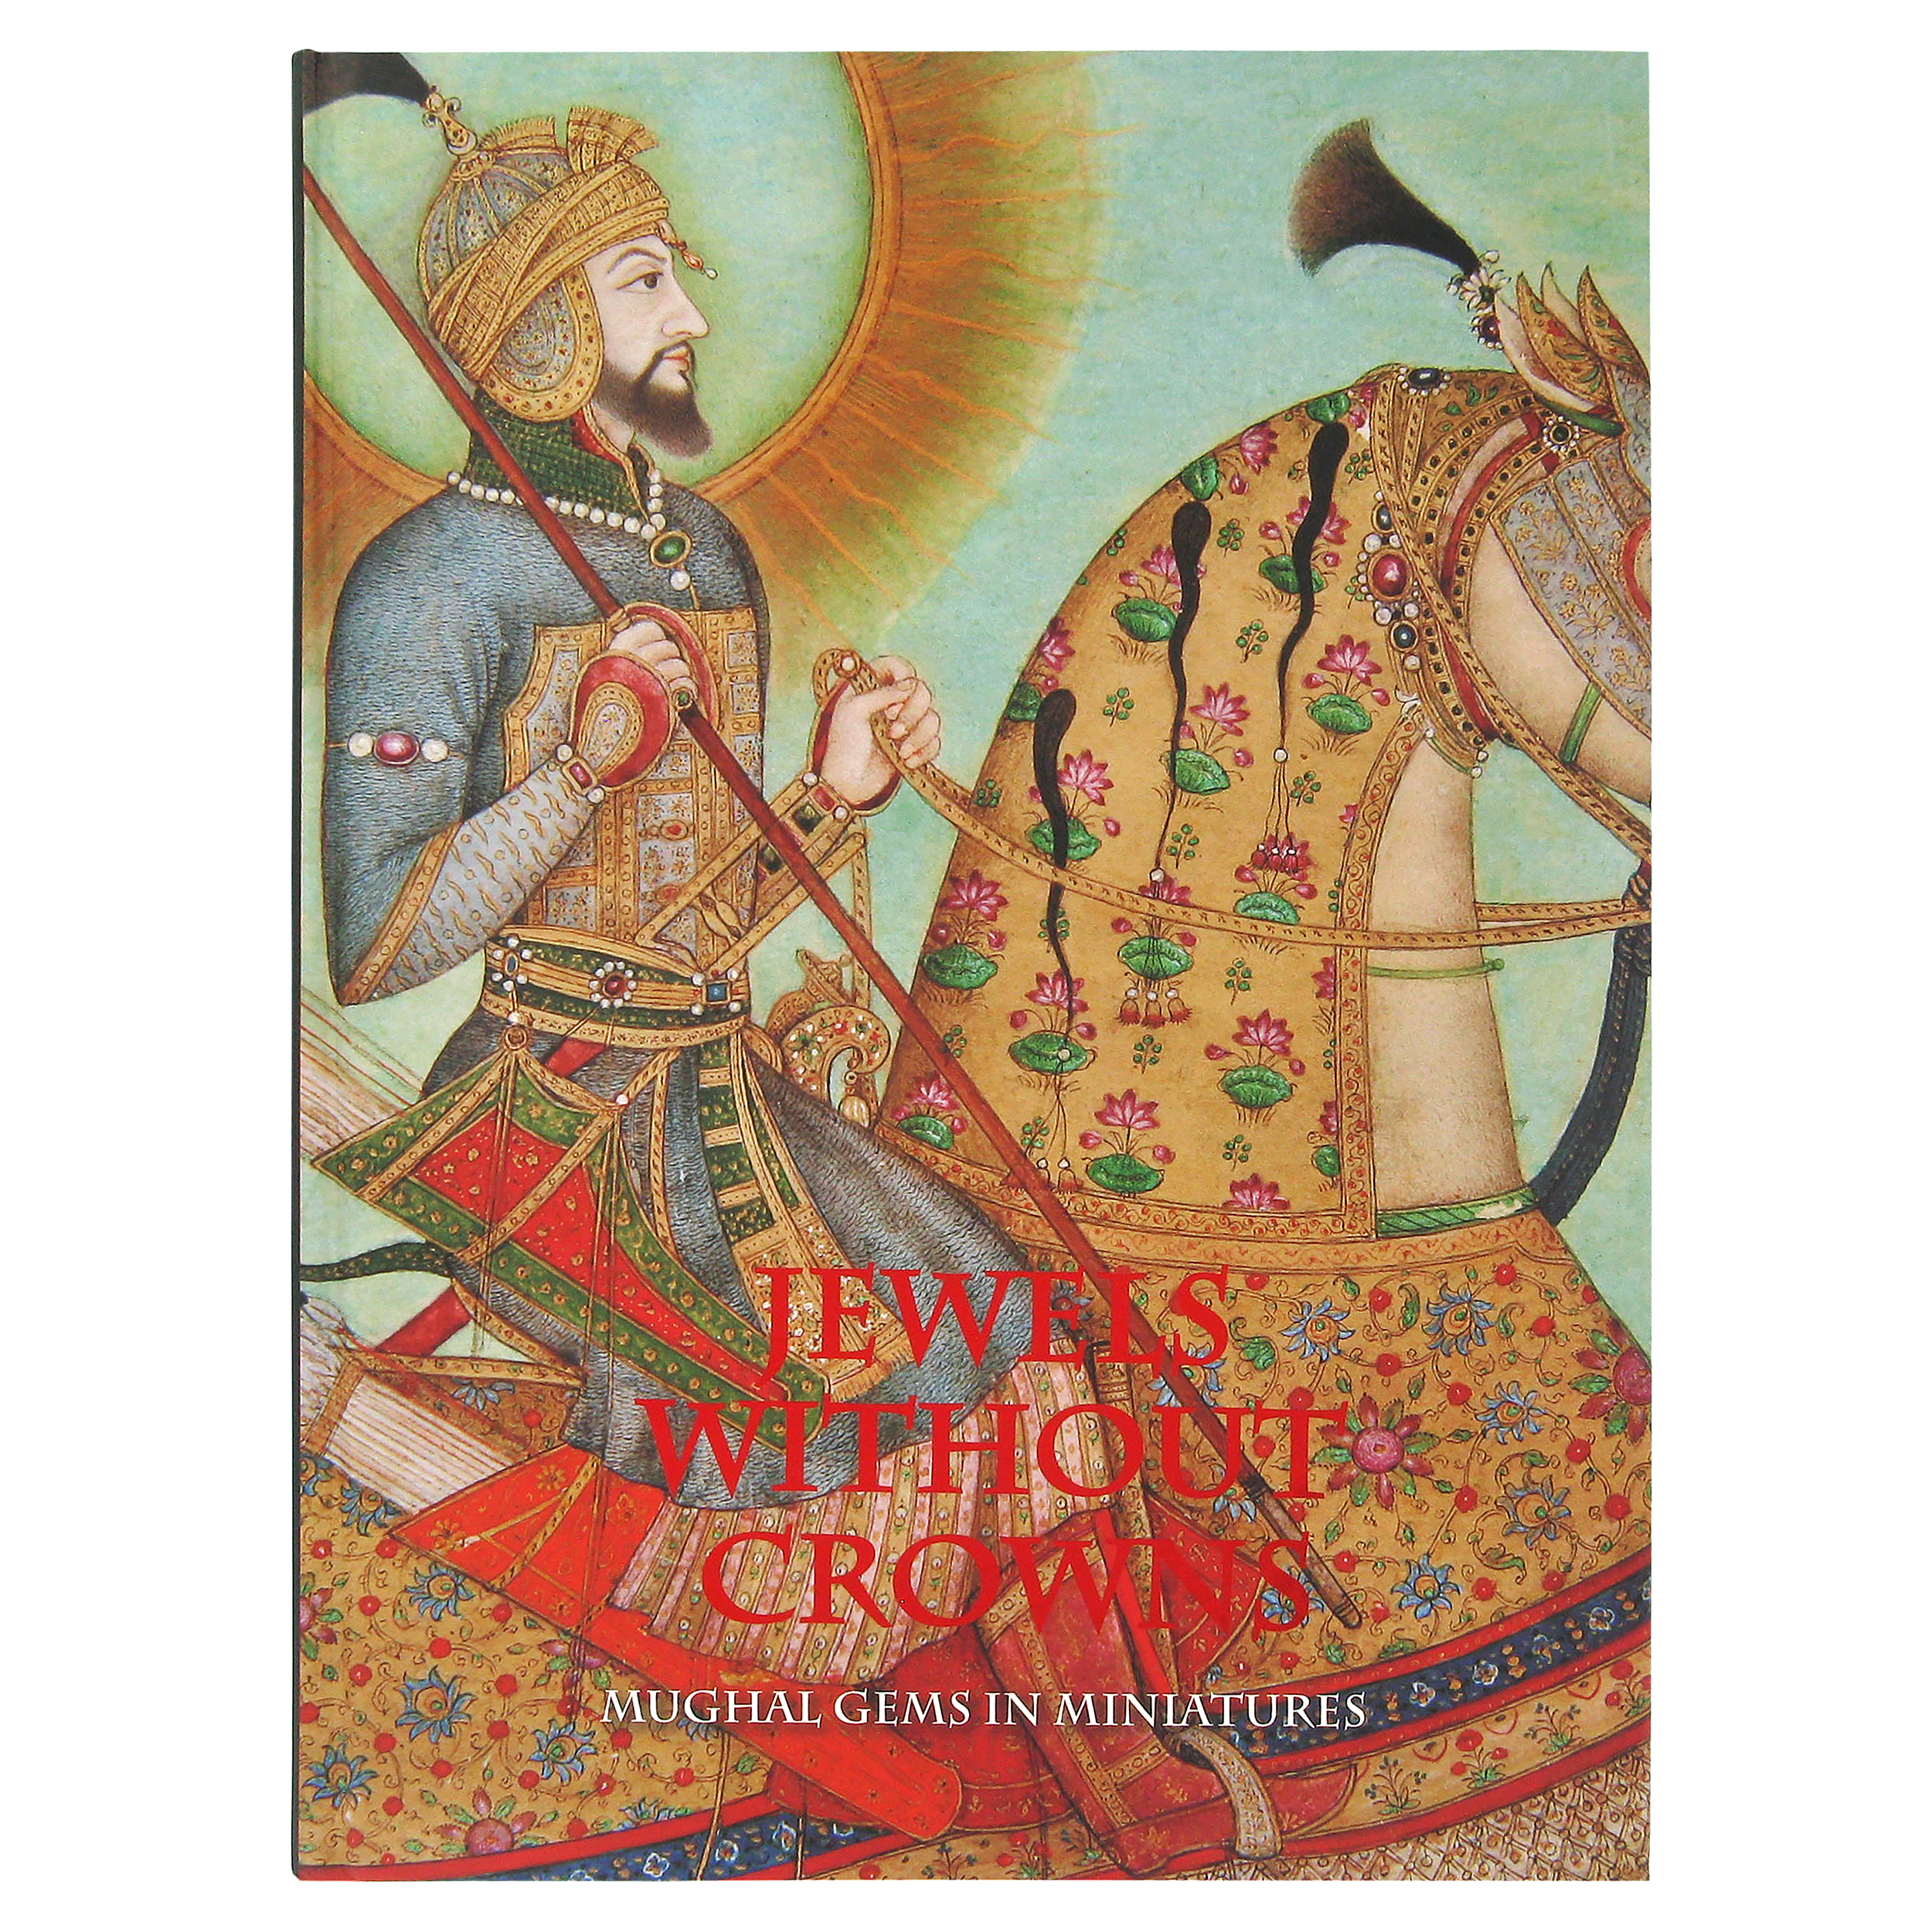 Jewels without Crowns: Mughal Gems in Miniatures